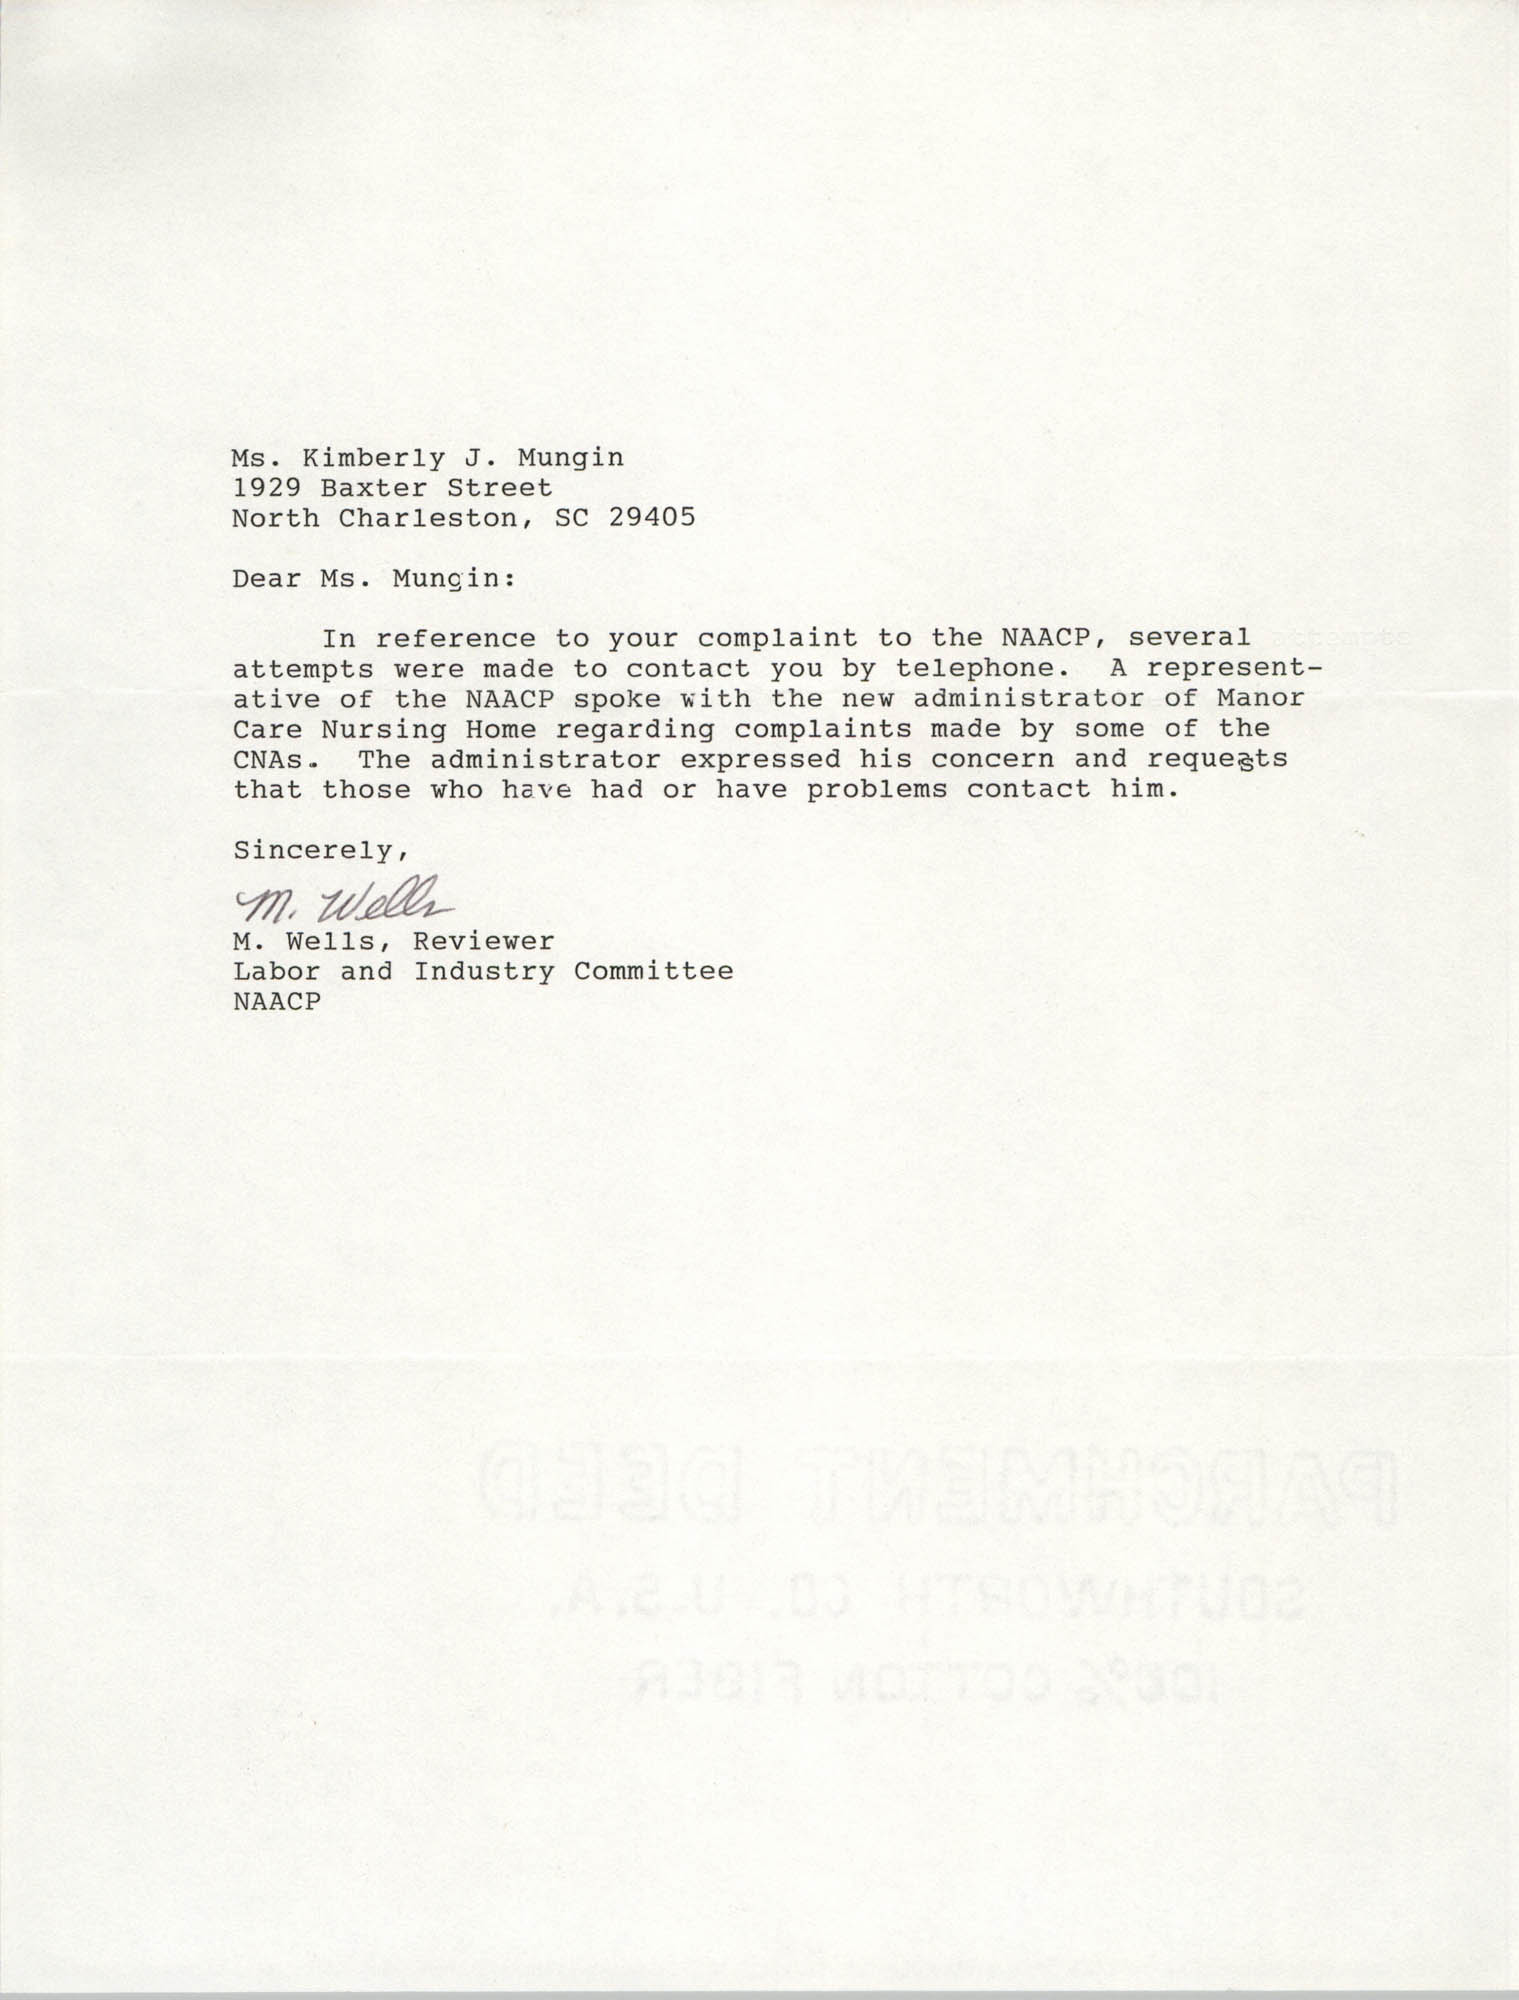 Letter from M. Wells to Kimberly J. Mungin